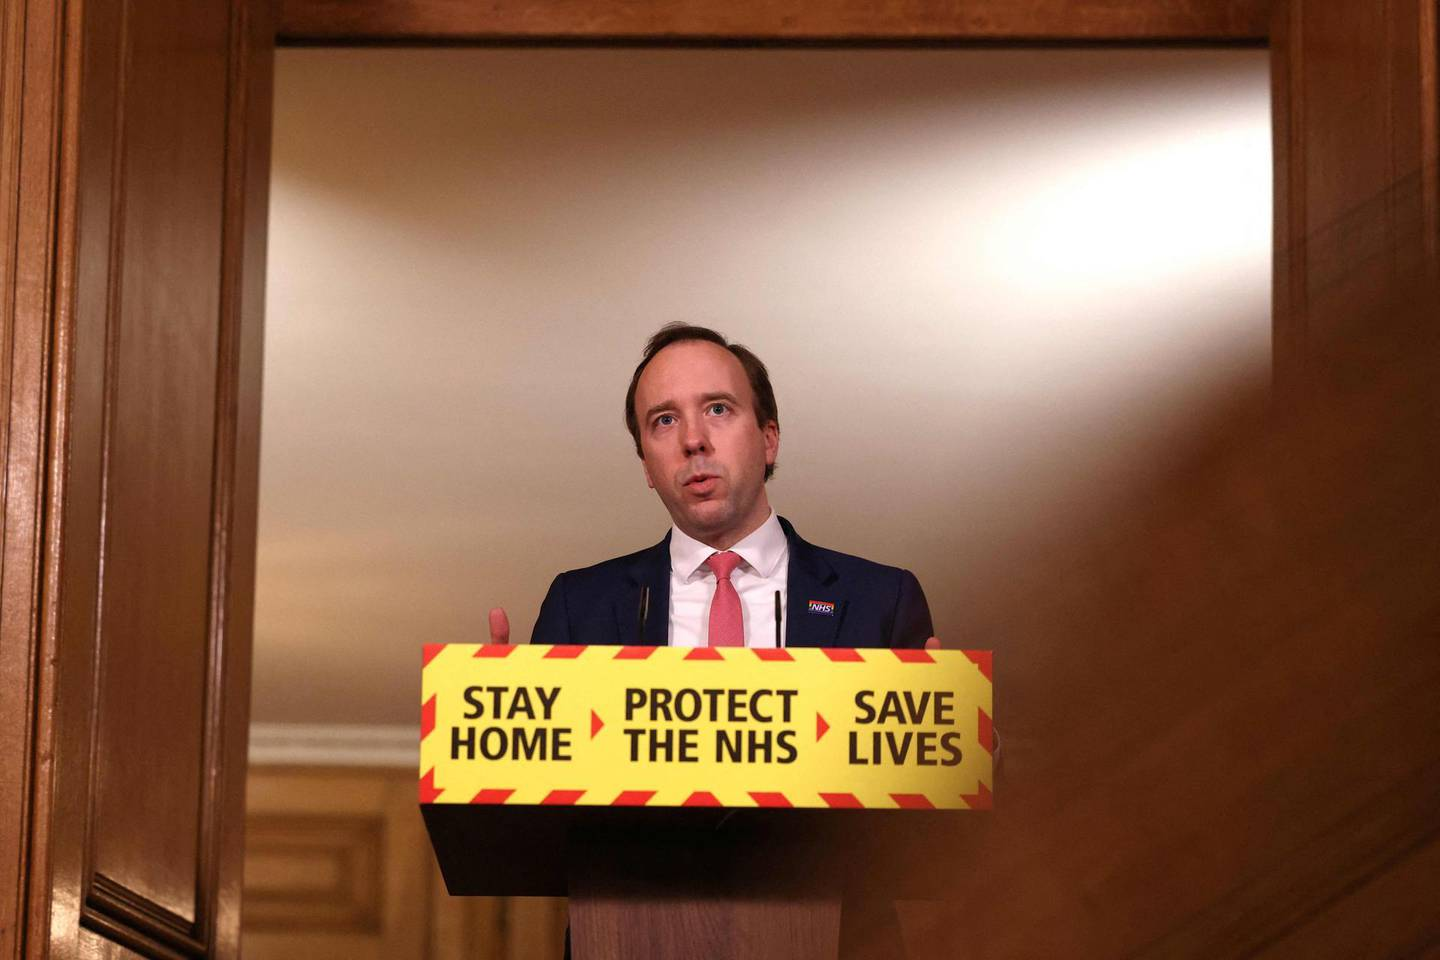 Britain's Health Secretary Matt Hancock gives an update on the coronavirus covid-19 pandemic during a virtual press conference inside 10 Downing Street in central London on March 5, 2021.  / AFP / POOL / Dan Kitwood